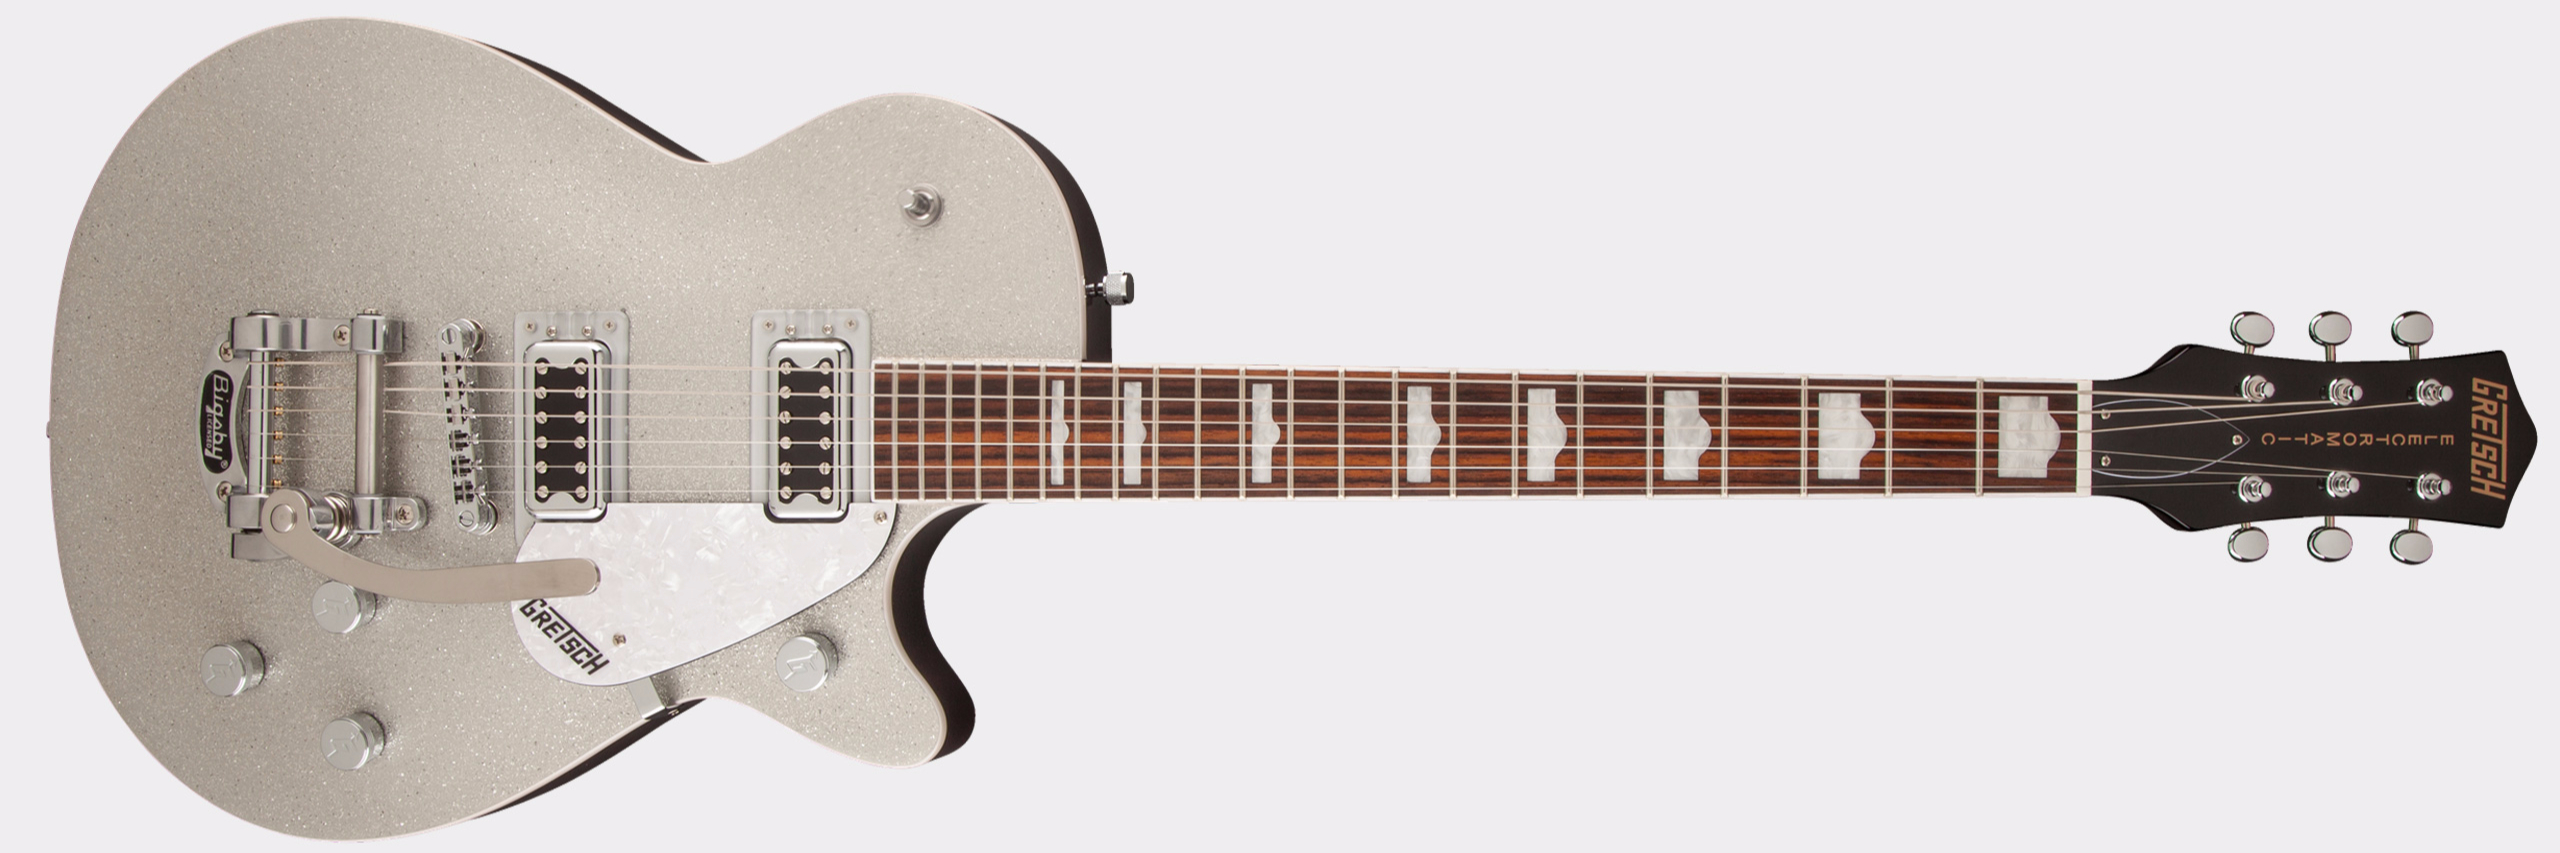 GRETSCH G5439T Electromatic Pro Jet Bigsby Silver Sparkle